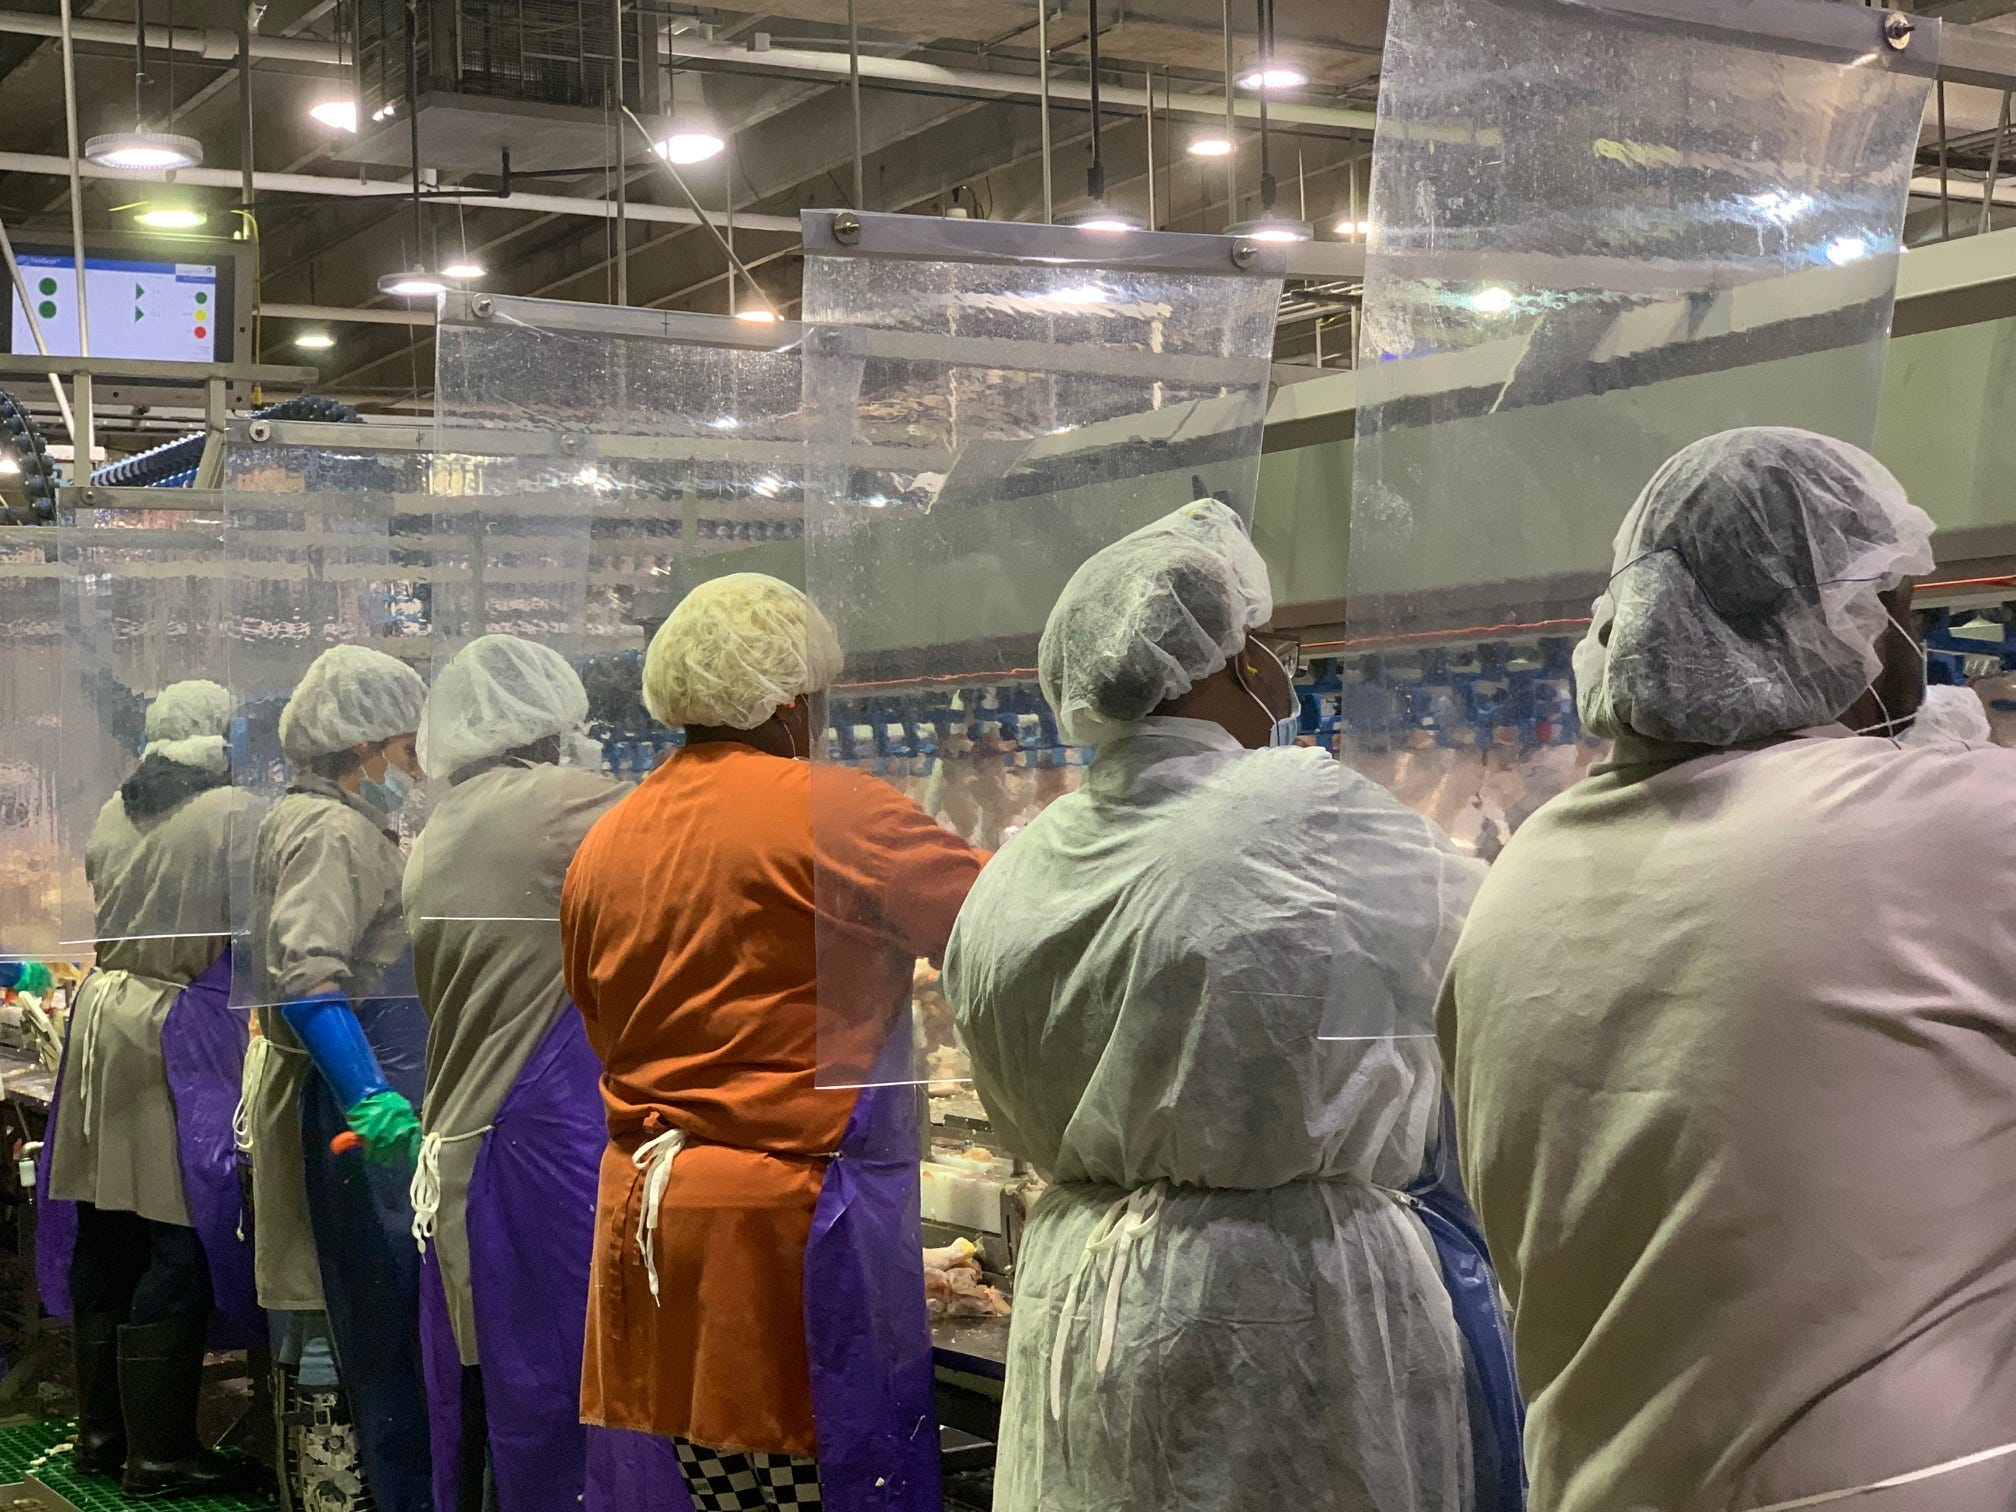 Meatpacking plants COVID may force choice of worker health or food